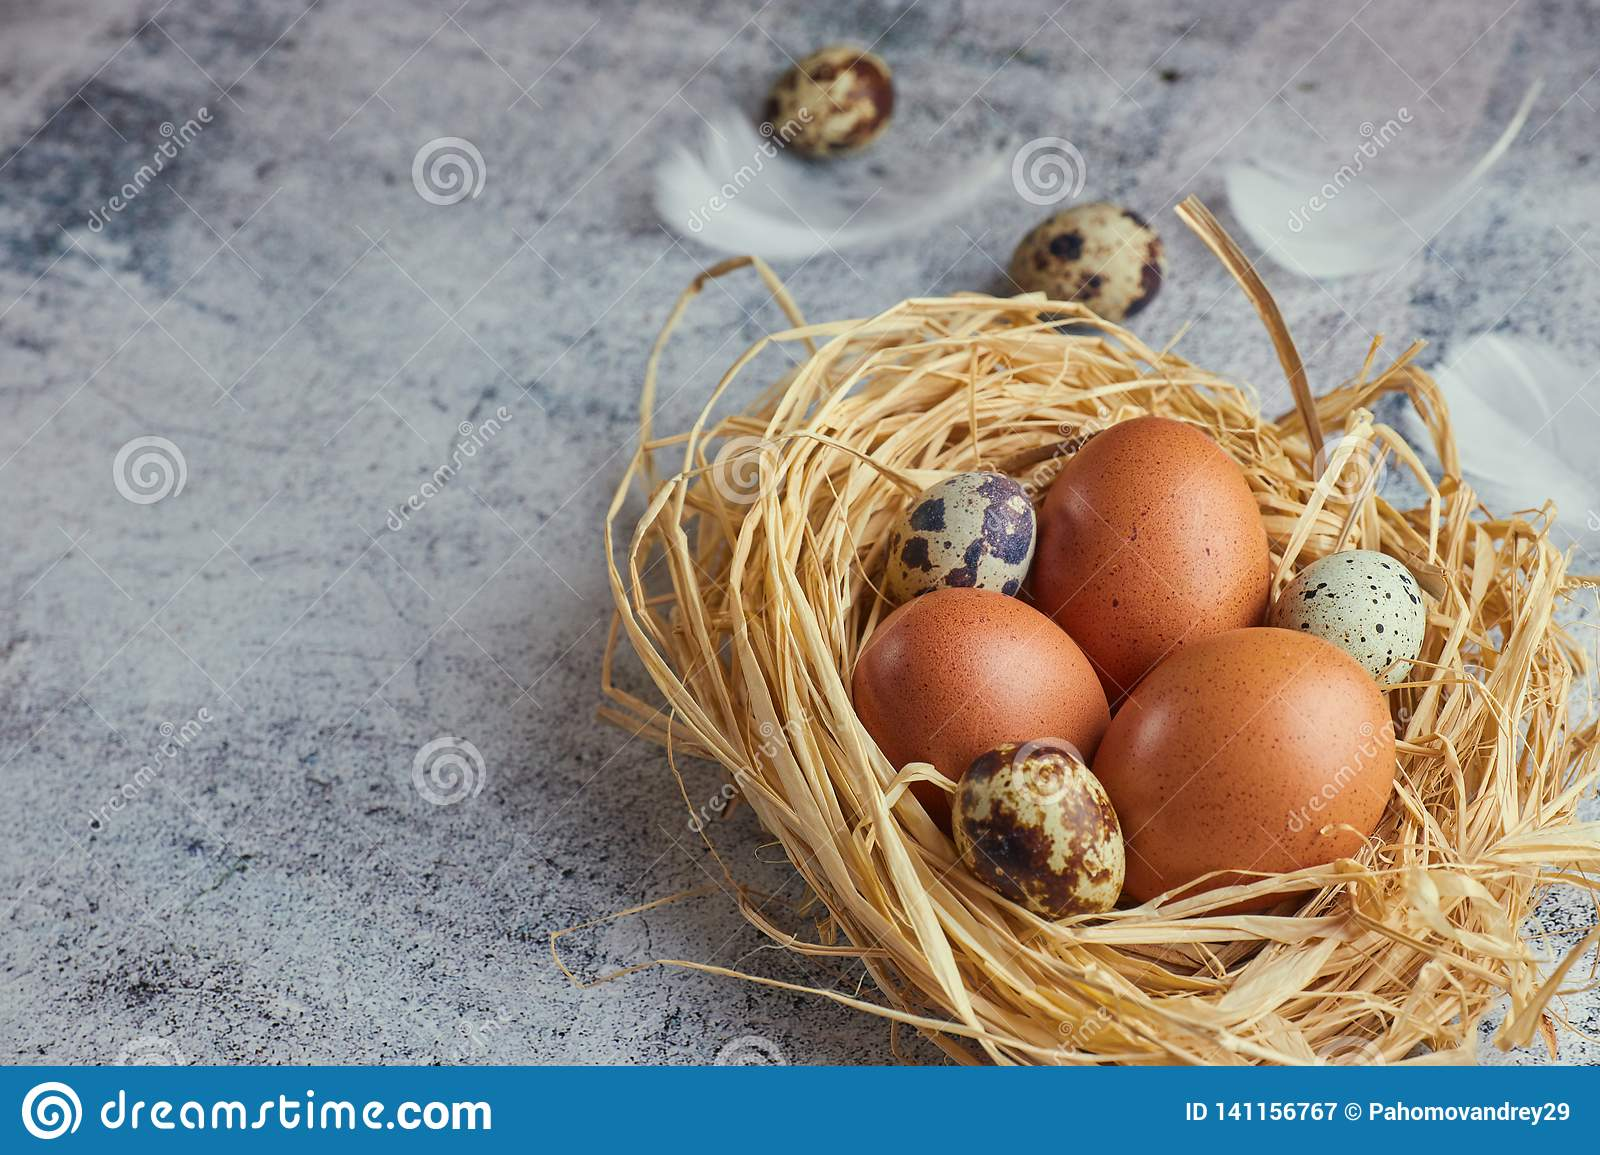 Brown eggs in hay nest on light concrete. fresh farm eggs. horizontal view of raw chicken eggs. The concept of the village. copy